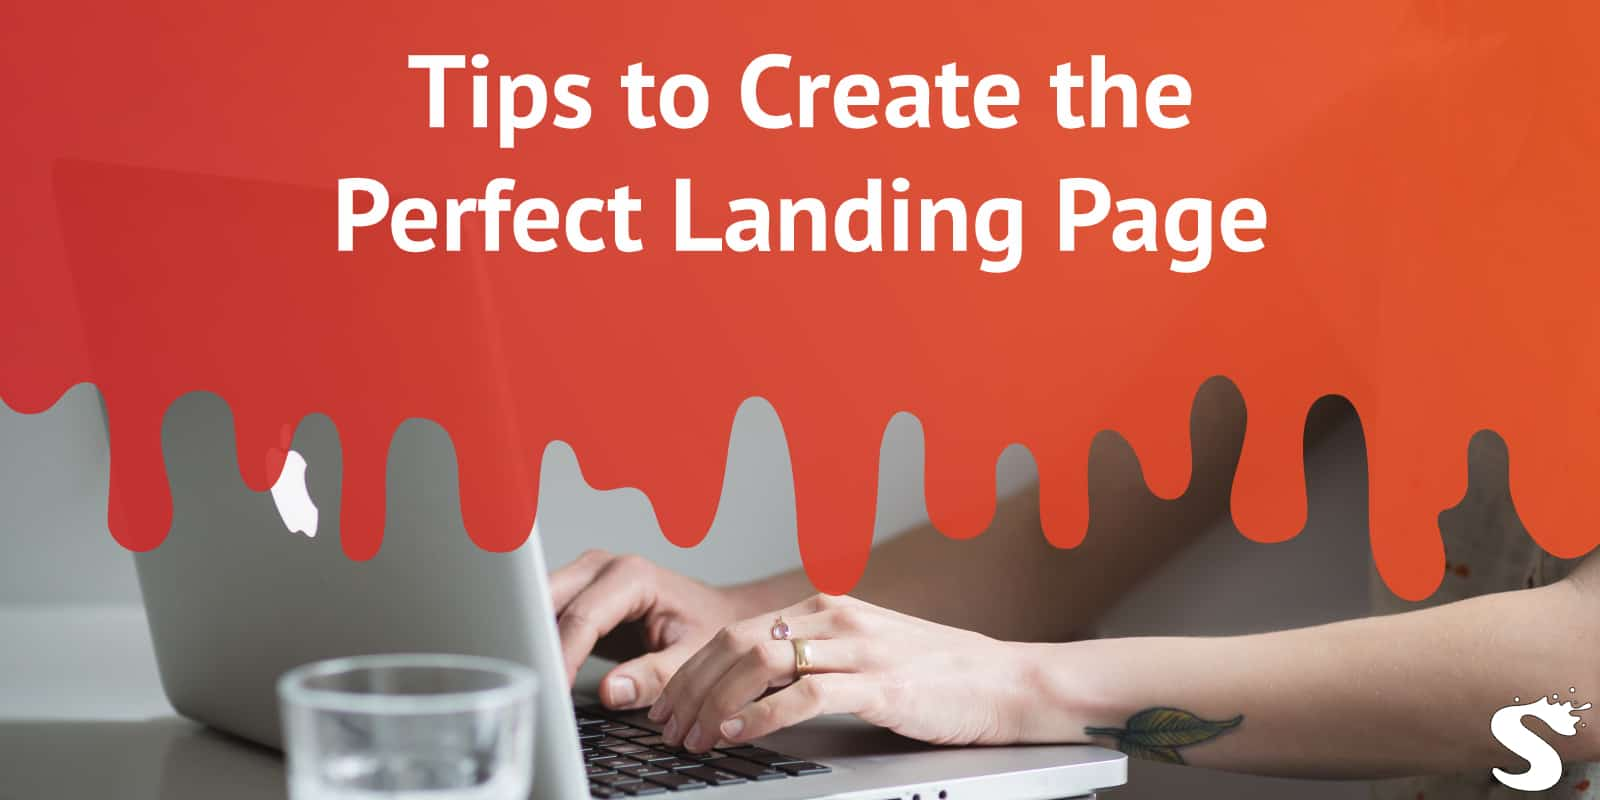 Tips to Create the Perfect Landing Page